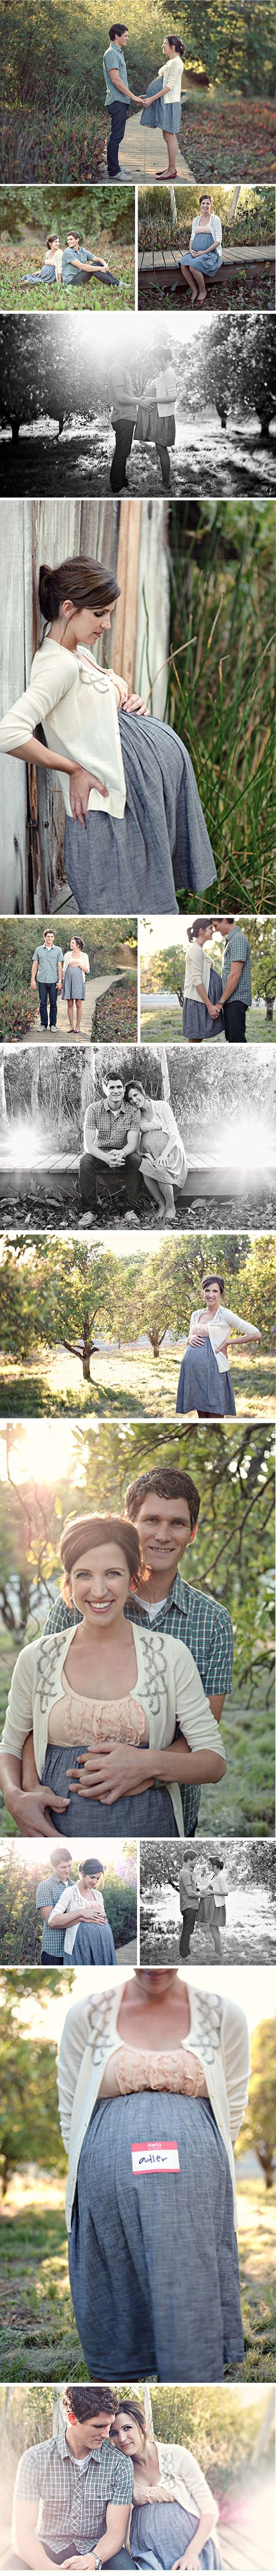 Sweet Spring Maternity Shoot – La Petite Peach- have I pinned this already?  Pinning even if I already have... Love this series